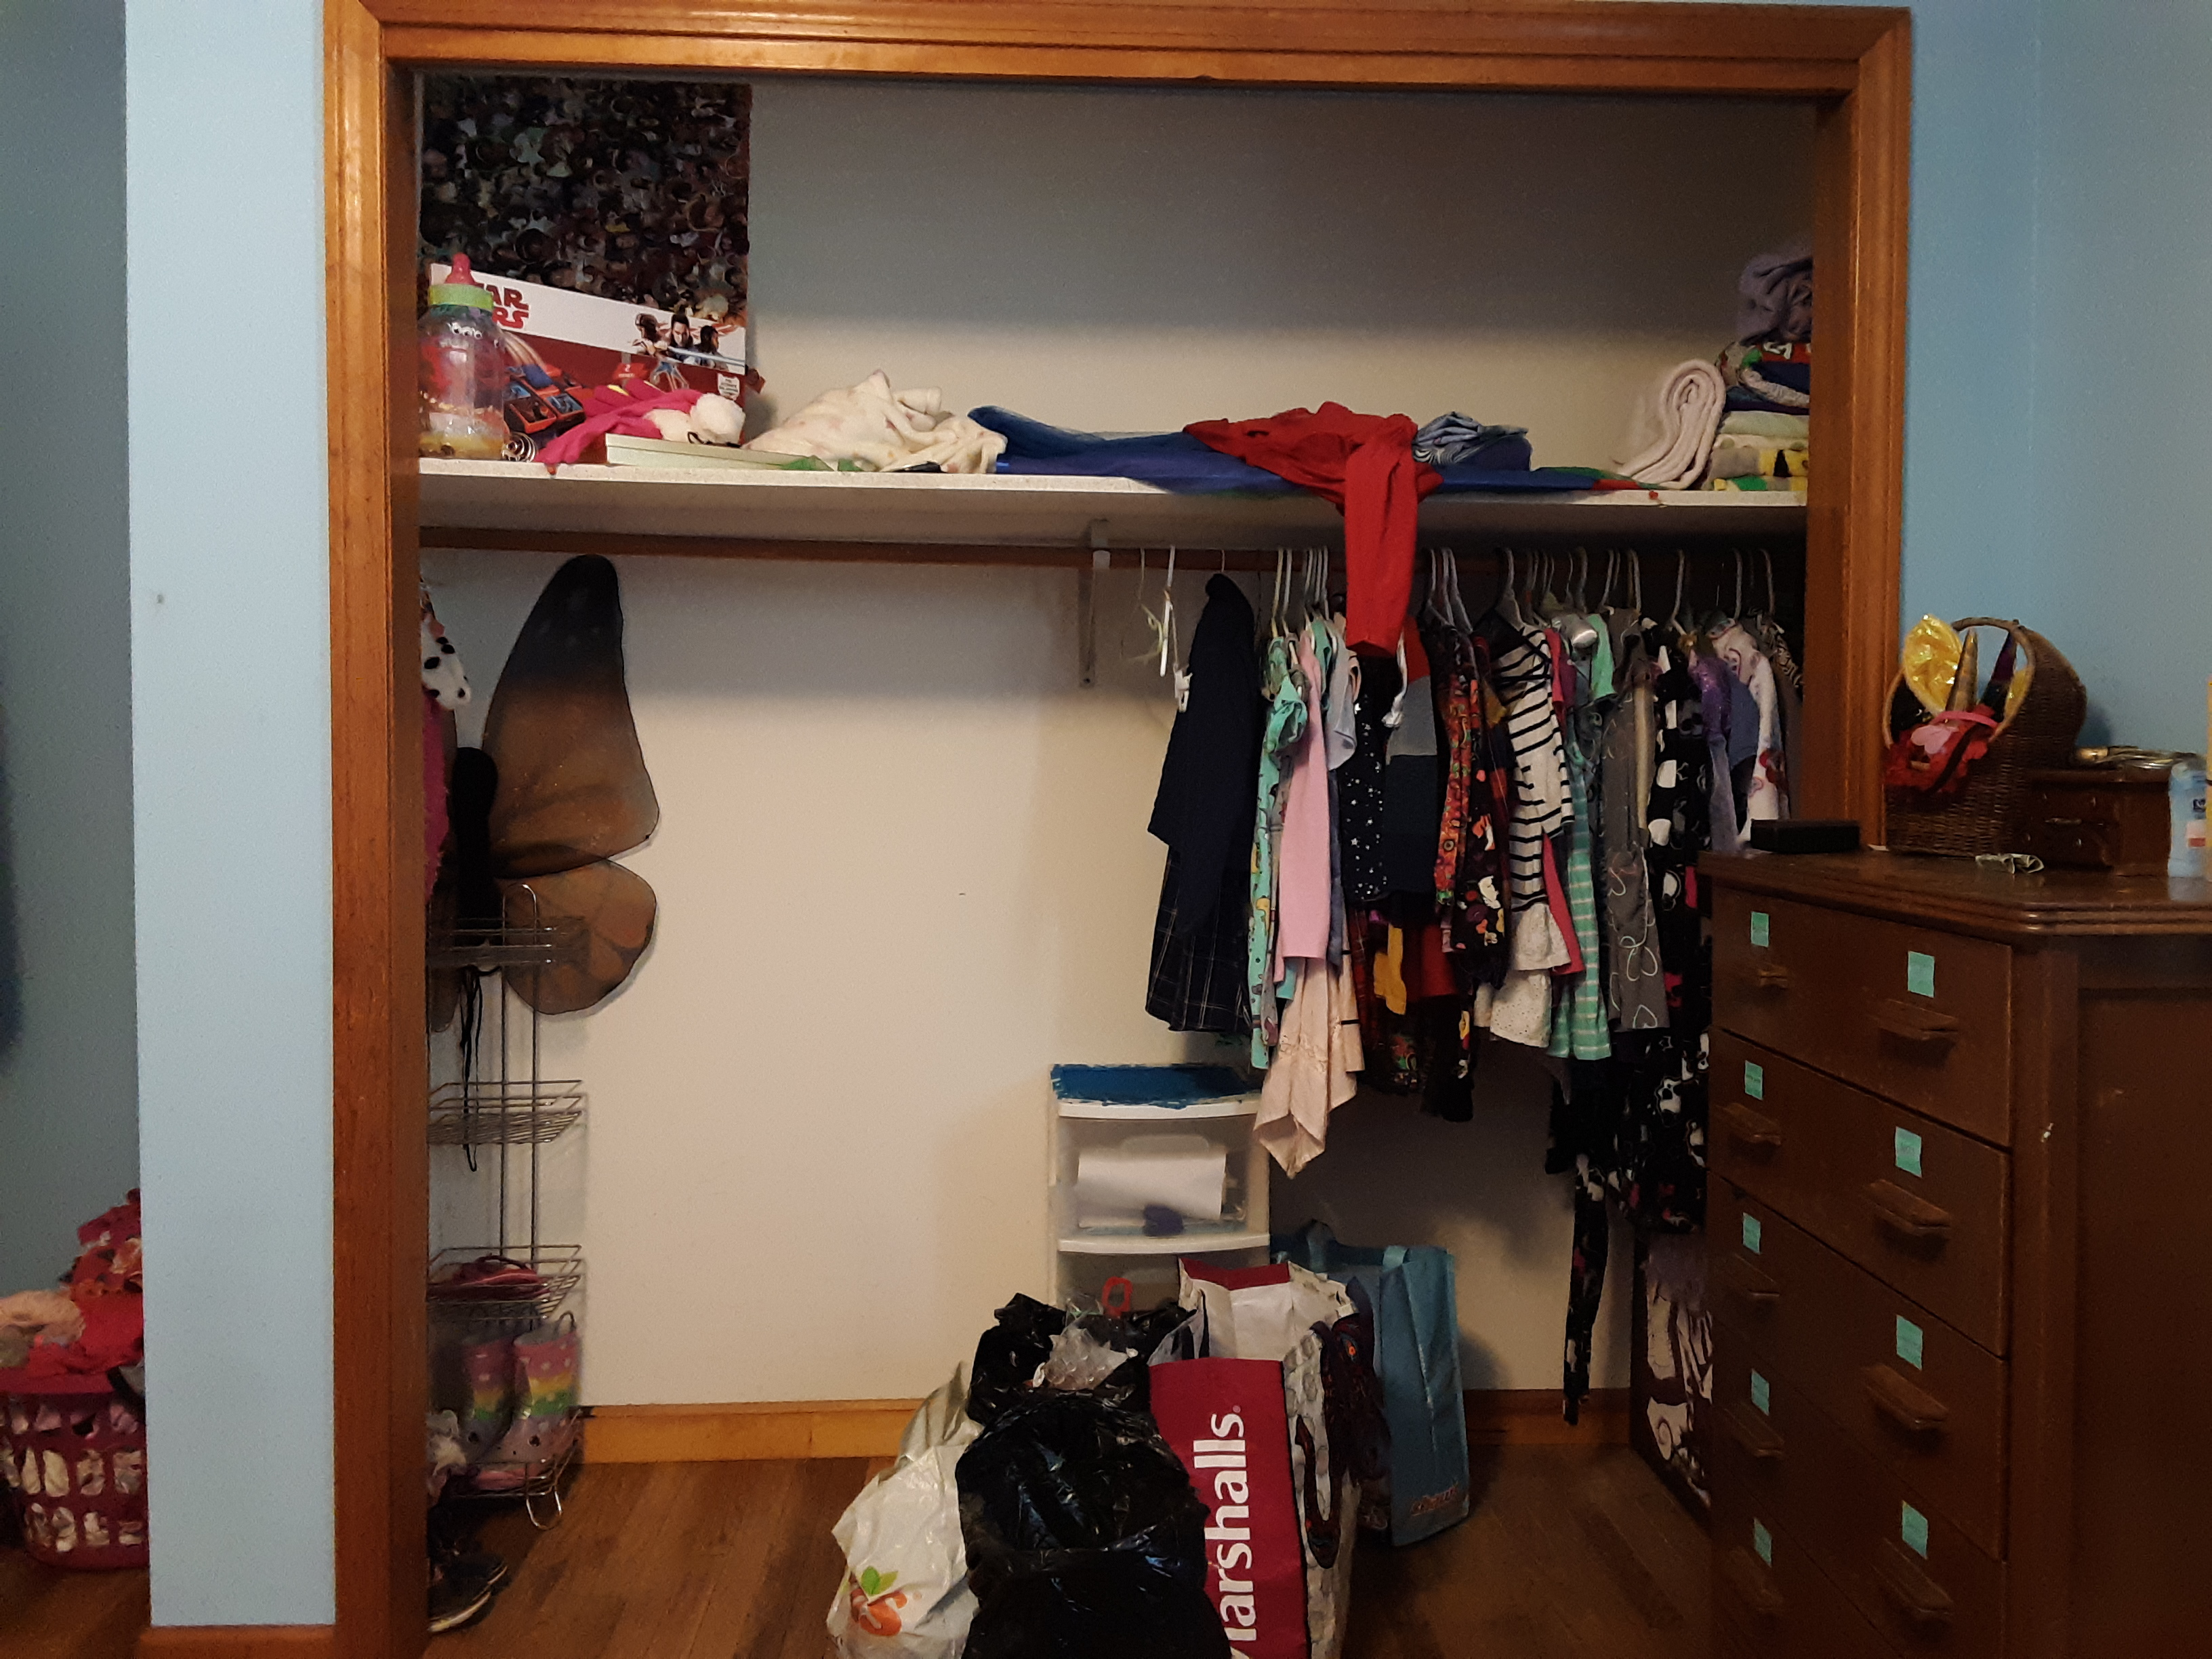 Ava's closet before we organized it